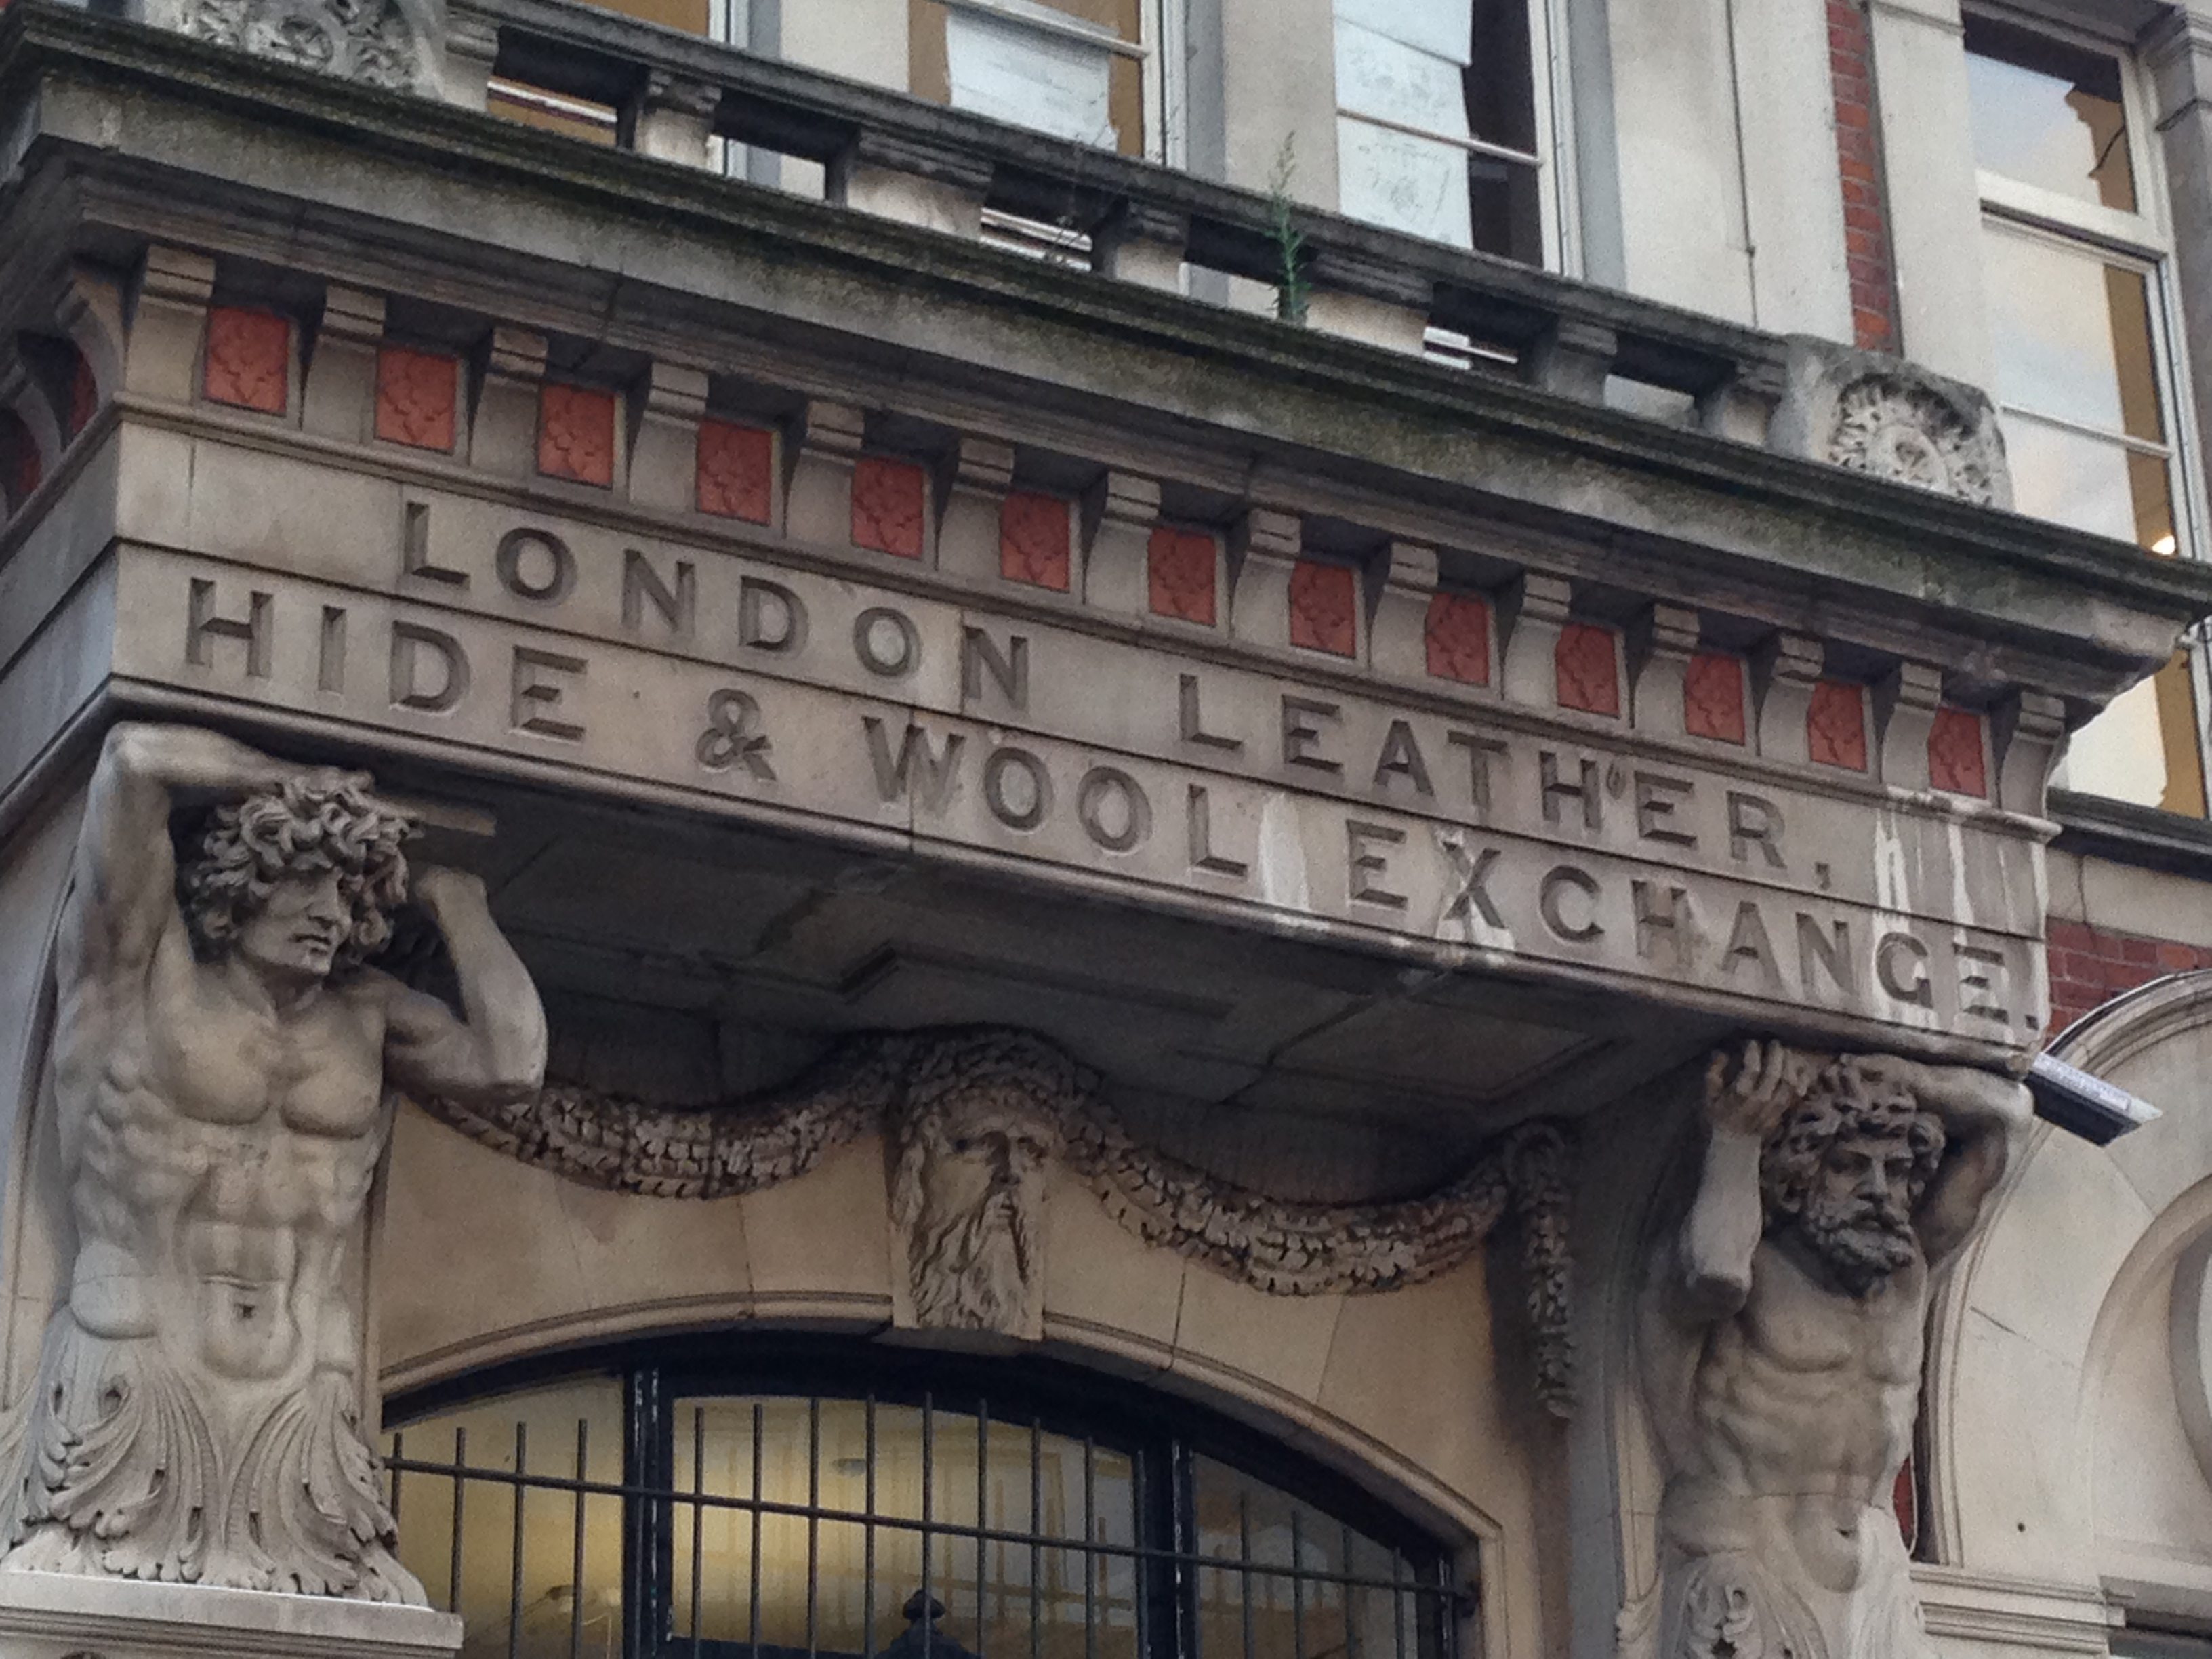 London Leather, Hide & Wool Exchange